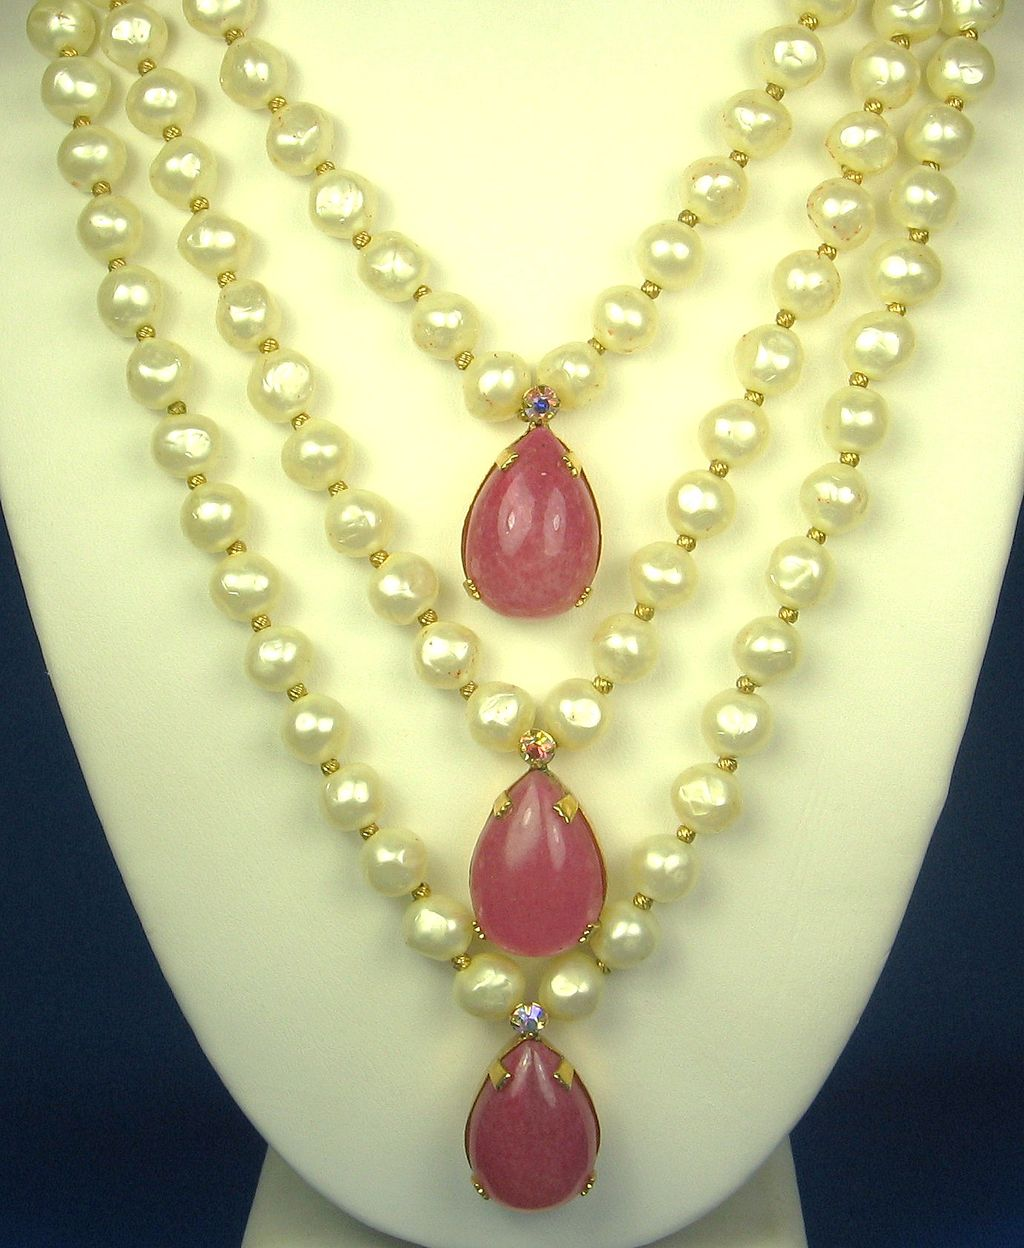 Hattie Carnegie Imitation Pearl and Pink Glass Necklace